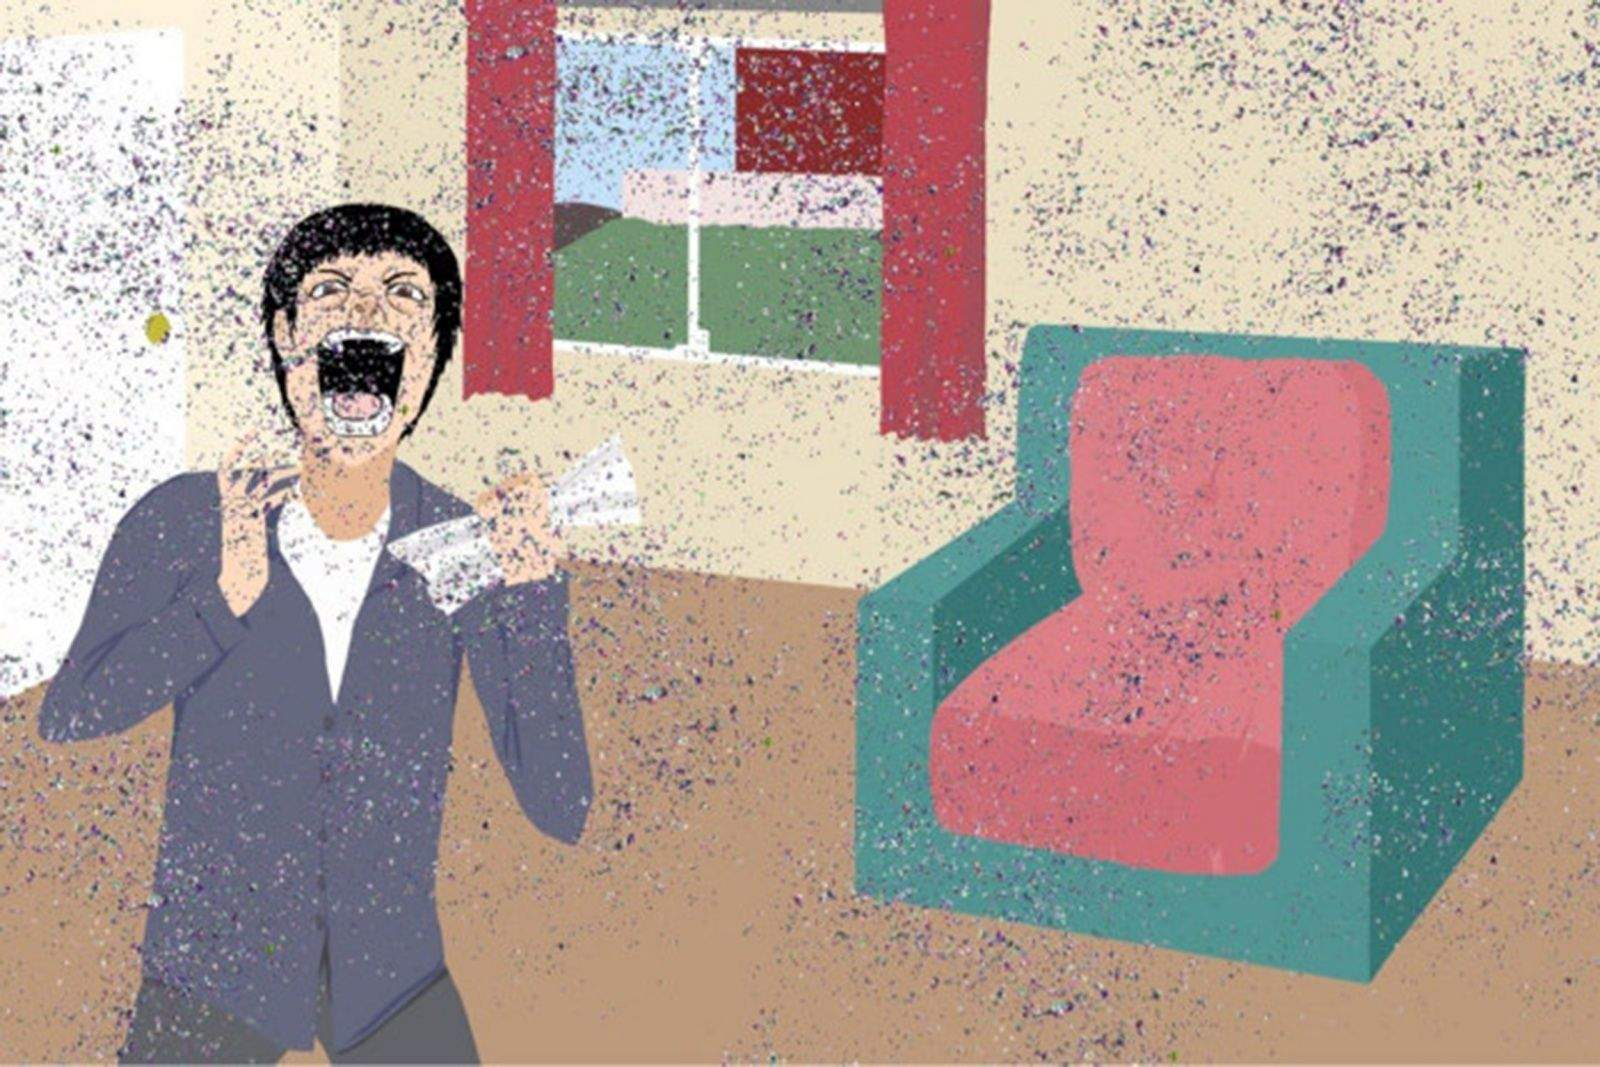 An illustration for the website shipyourenemiesglitter.com depicts the anger that ensues when opening an envelop full of glitter sent by a prankster.